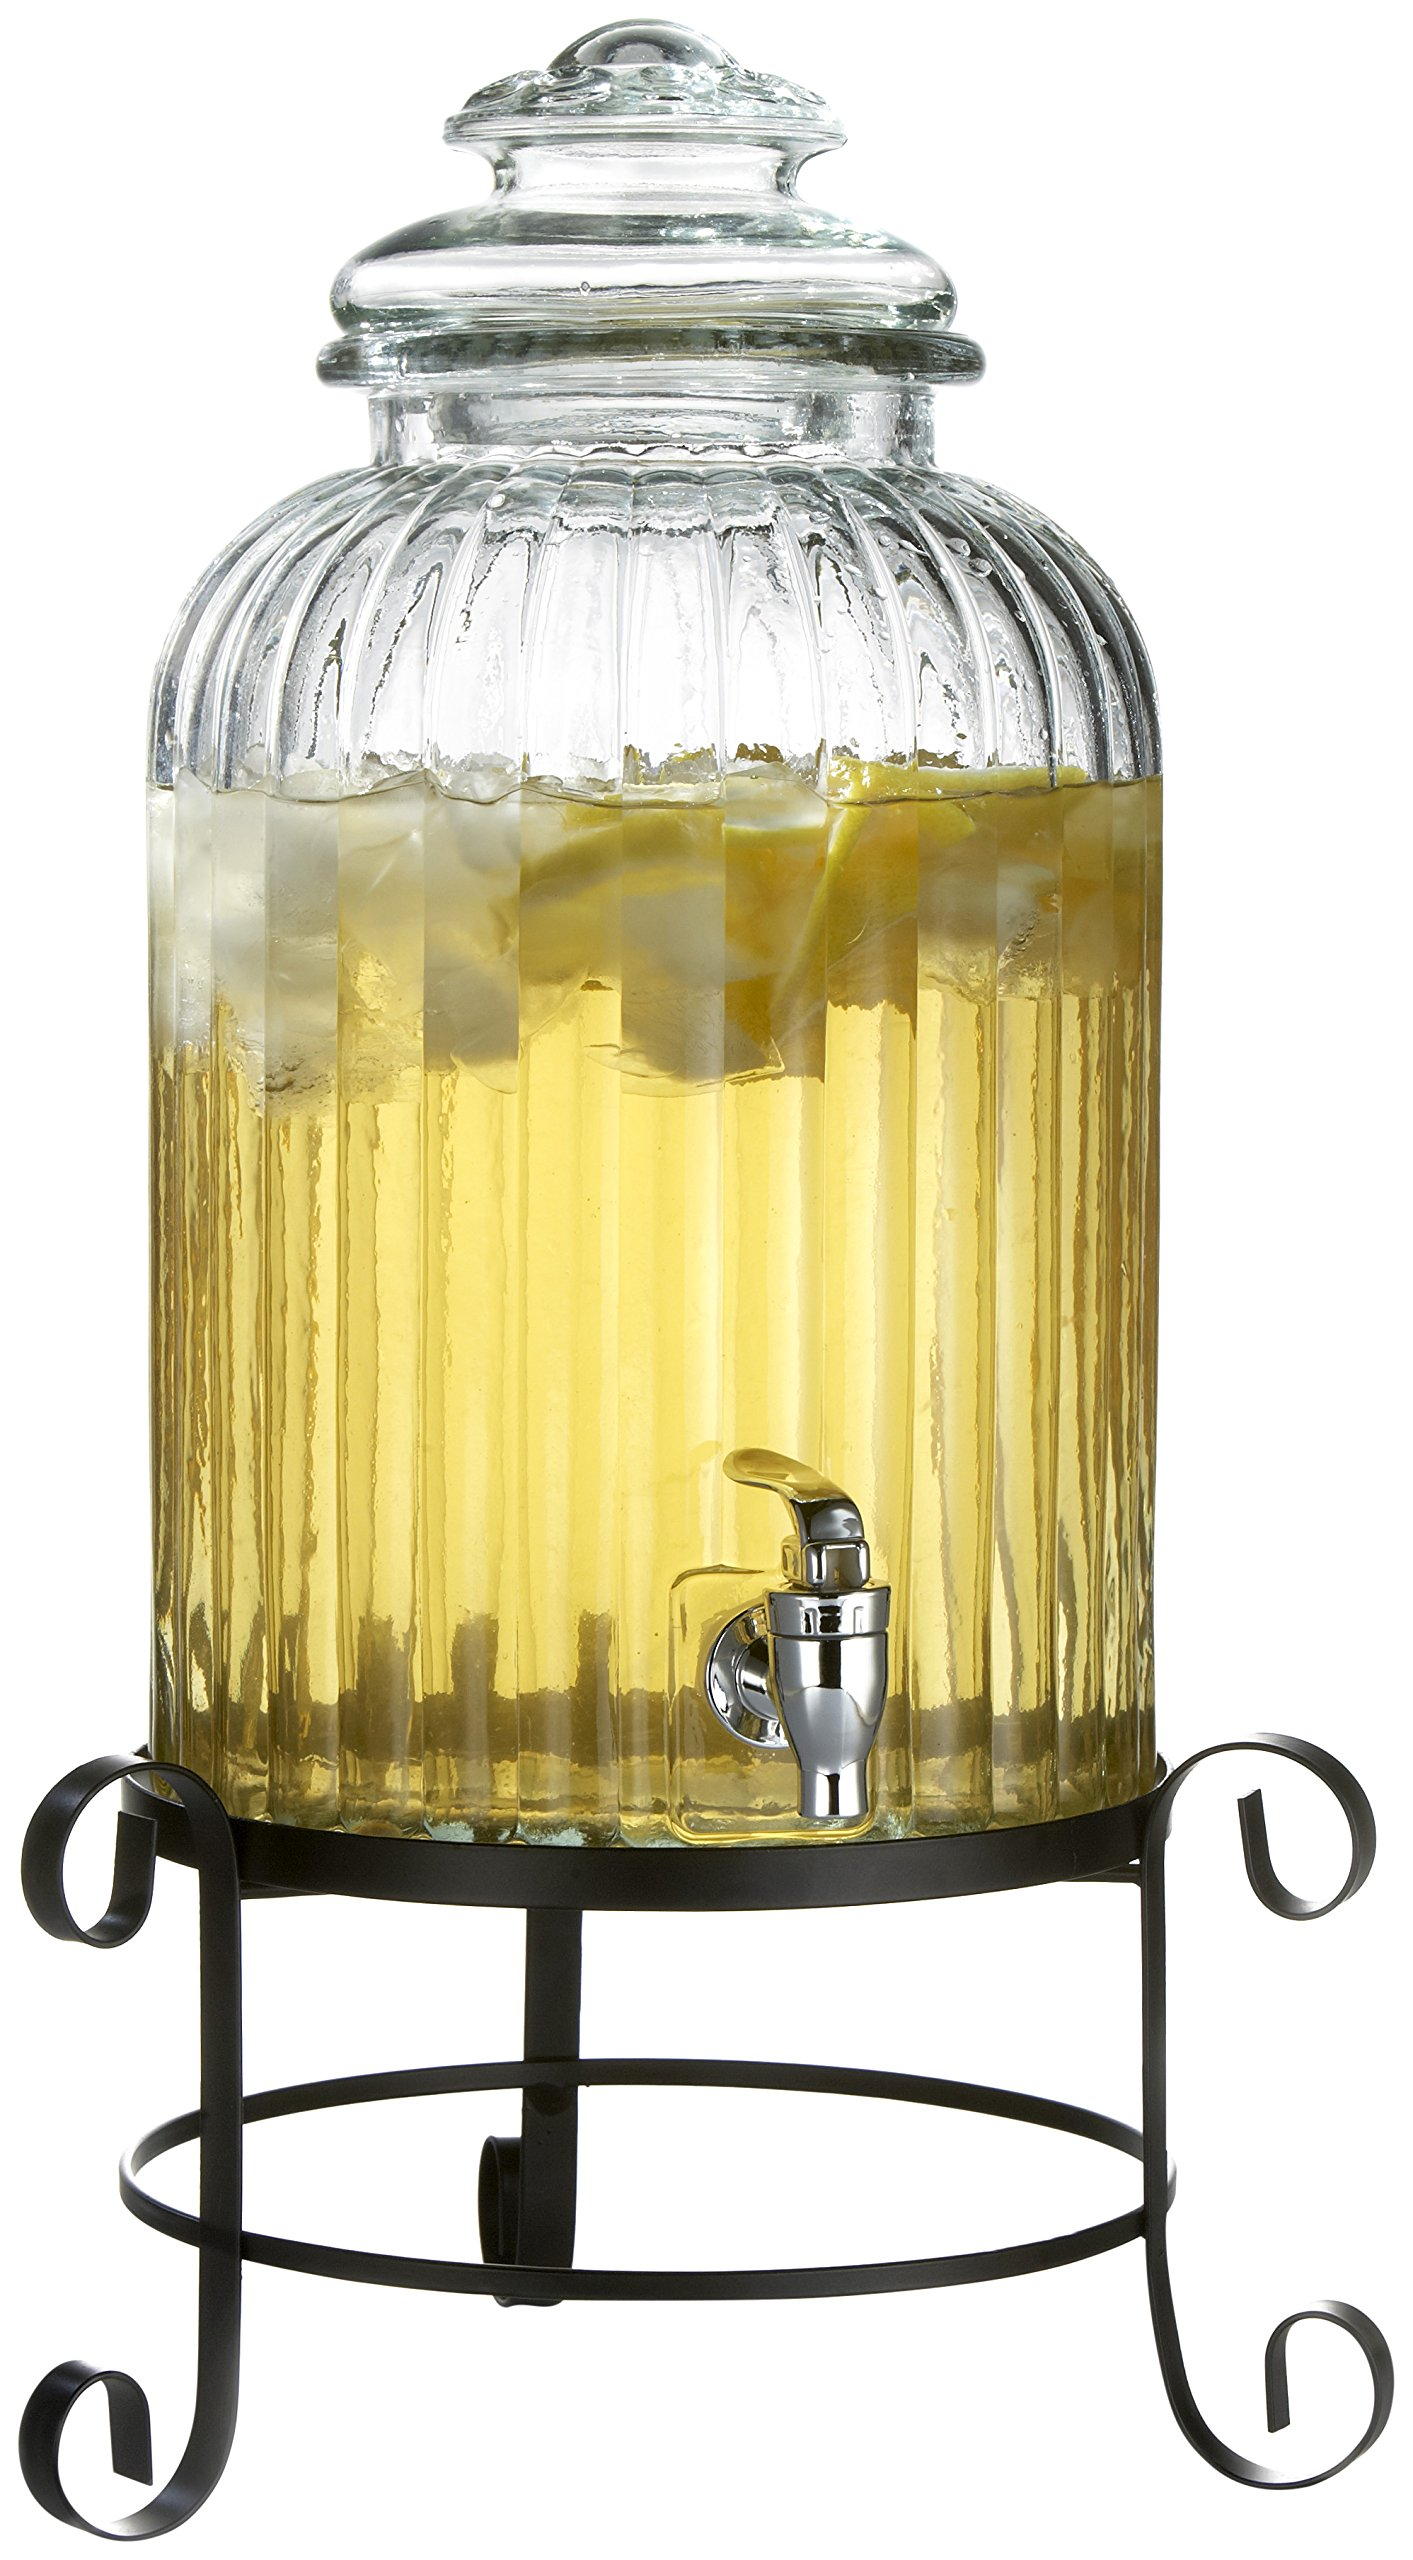 Style Setter Springfield 210919-RB 3 Gallon Glass Beverage Drink Dispenser with Metal Stand & Glass Lid, 21'', Clear